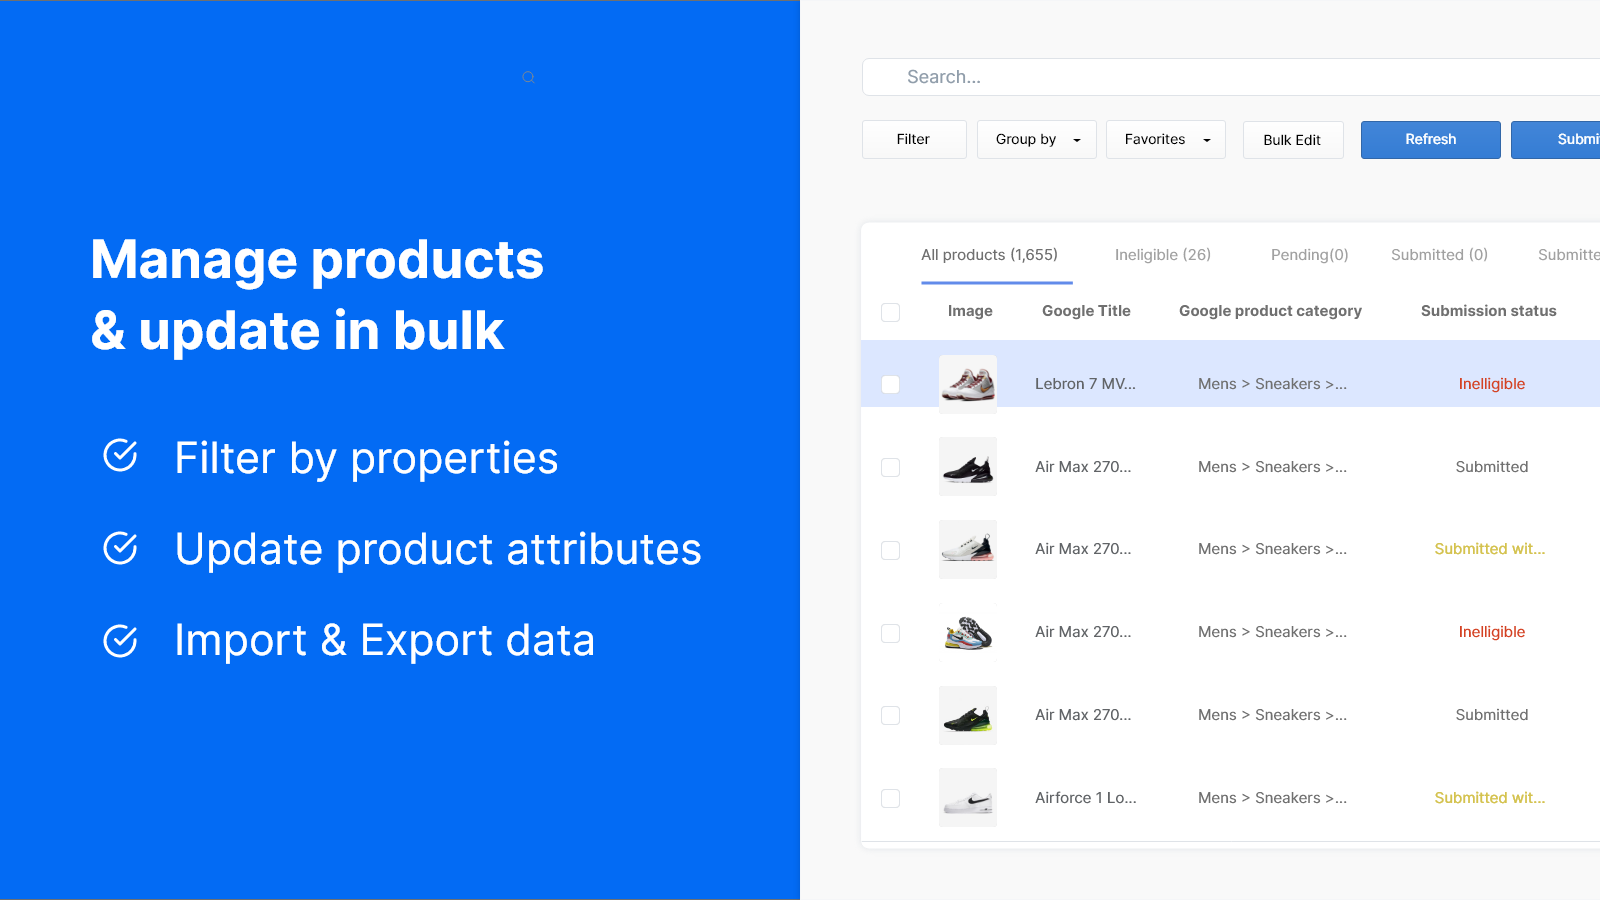 Manage products & update attributes in bulk